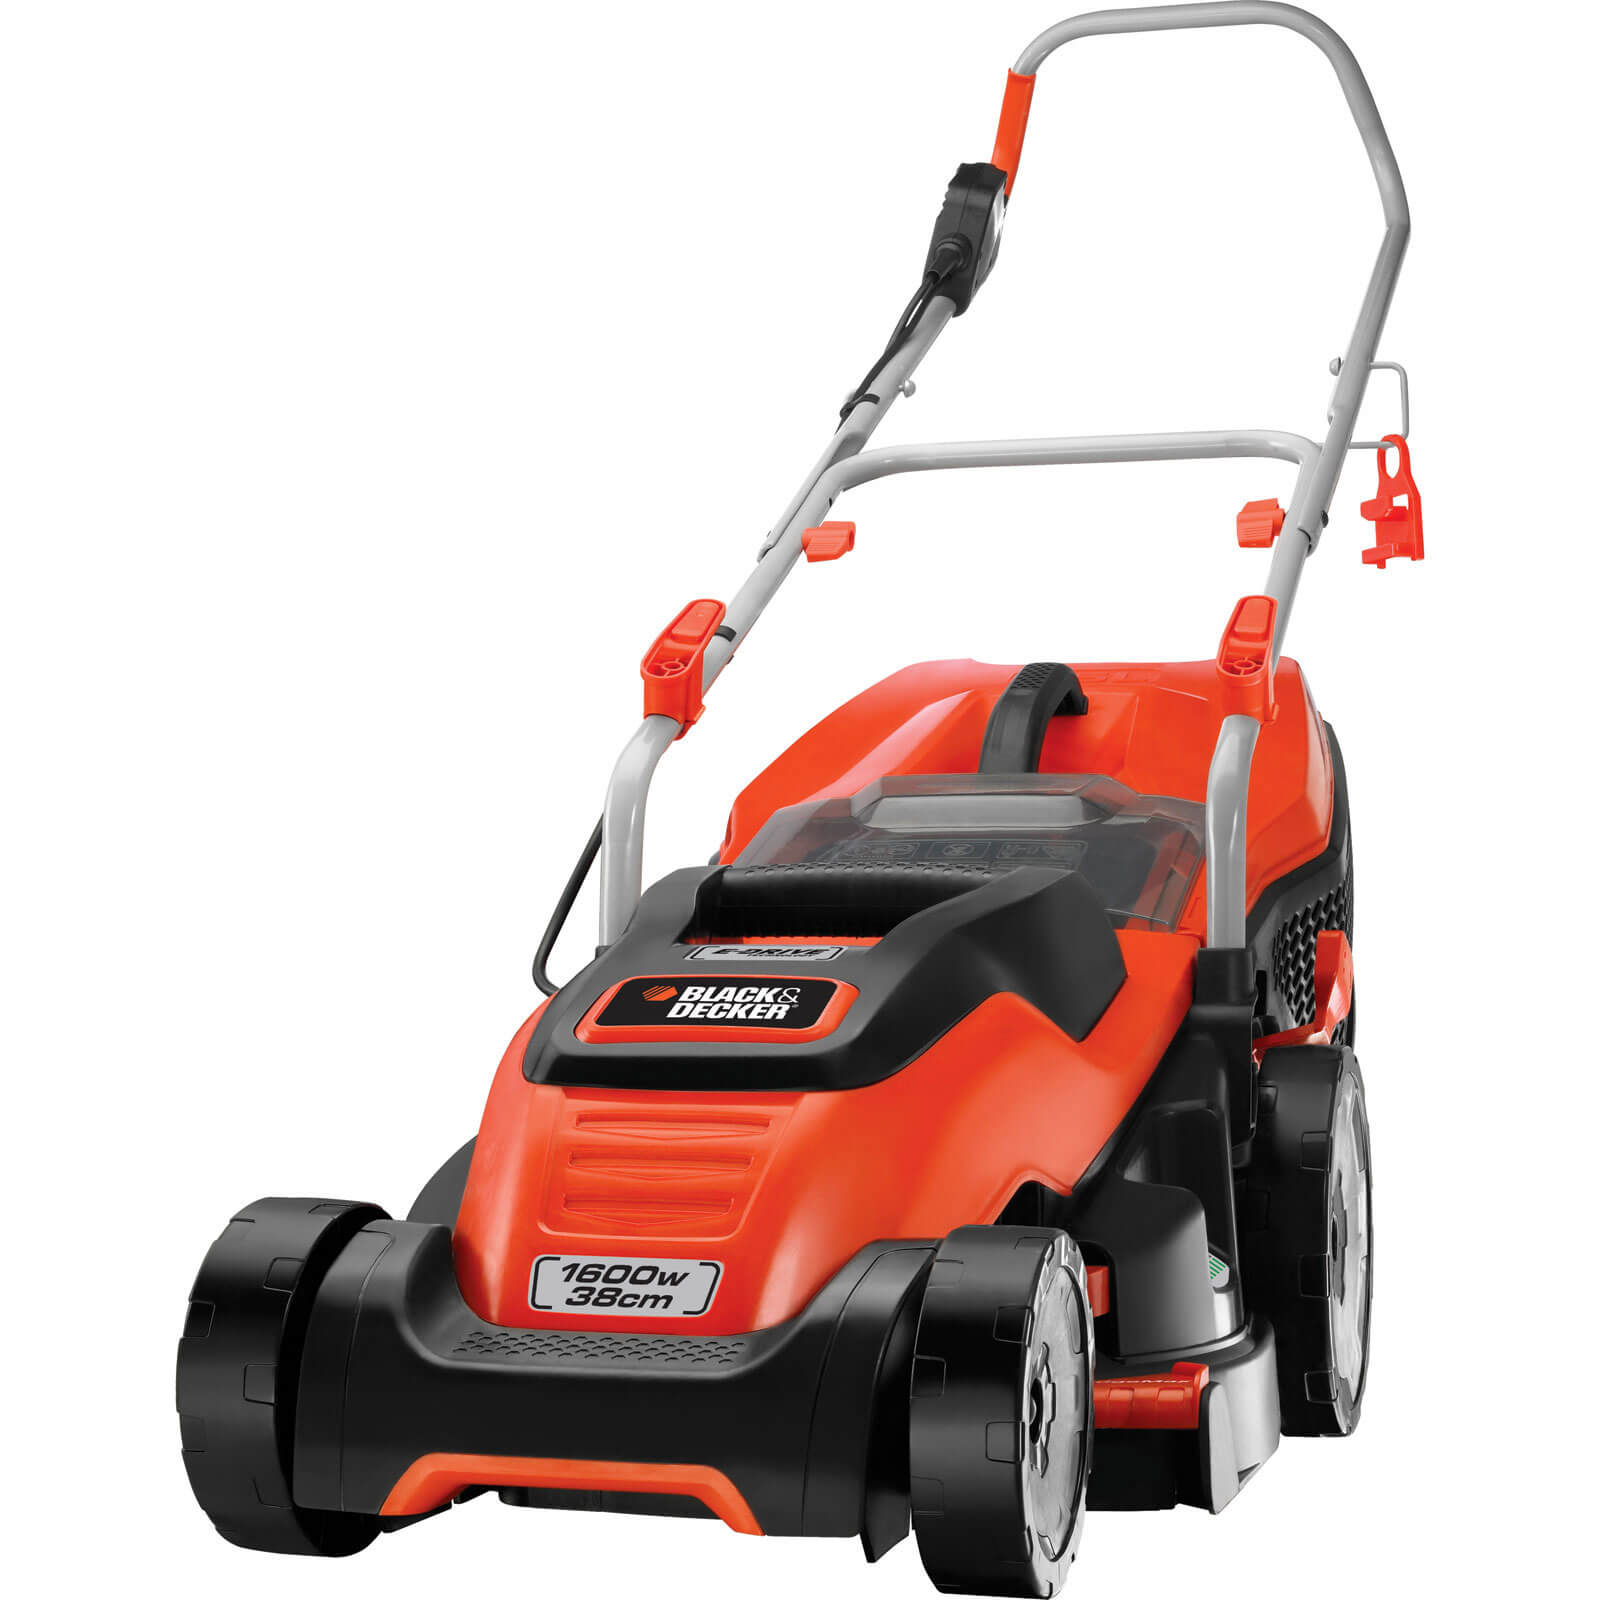 Image of Black & Decker EMAX38i Compact & Go Rotary Lawnmower 380mm 240v